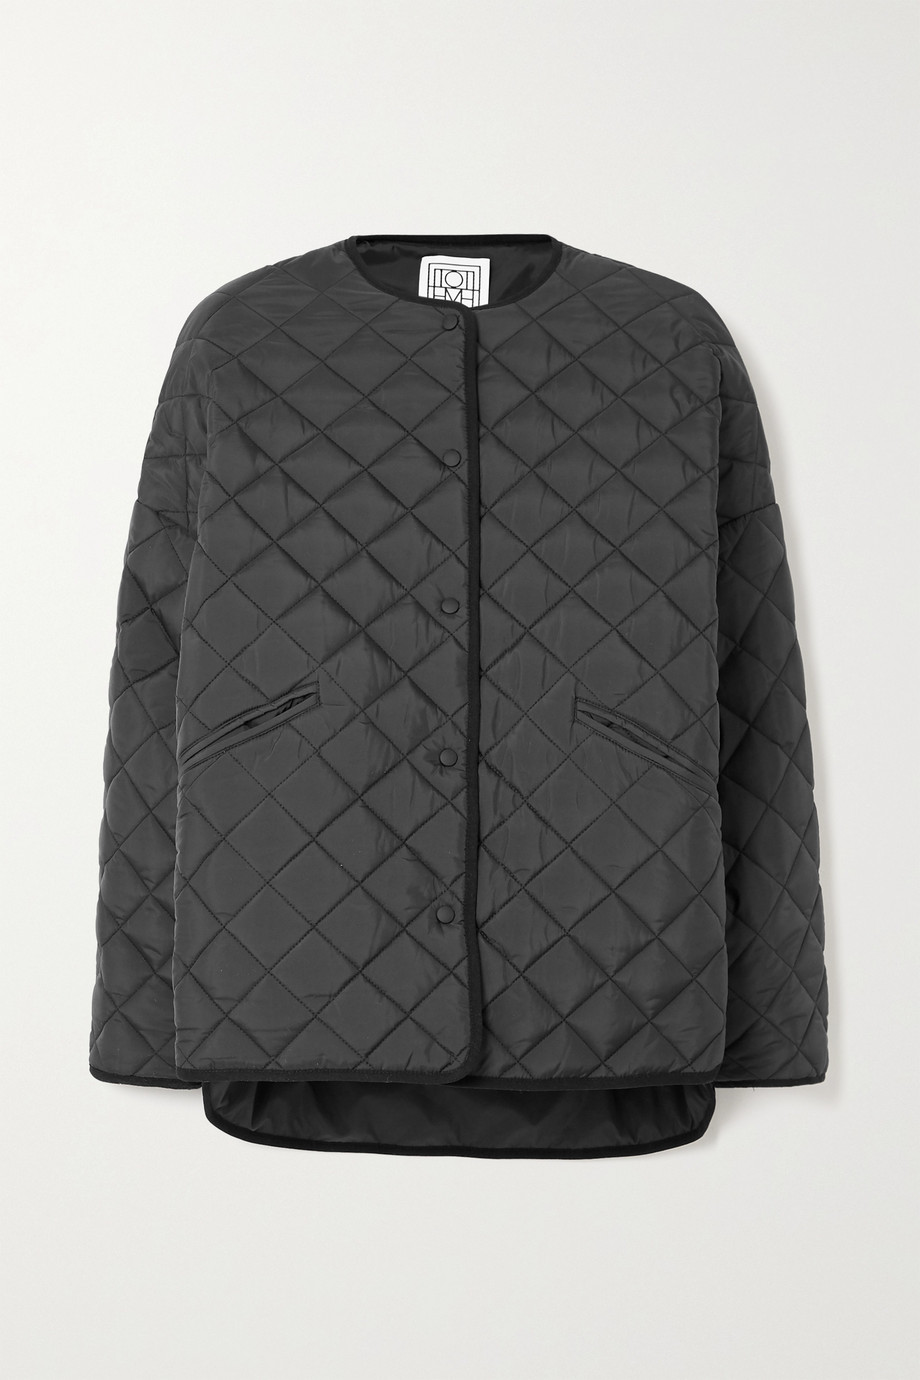 Totême Dublin oversized quilted shell jacket